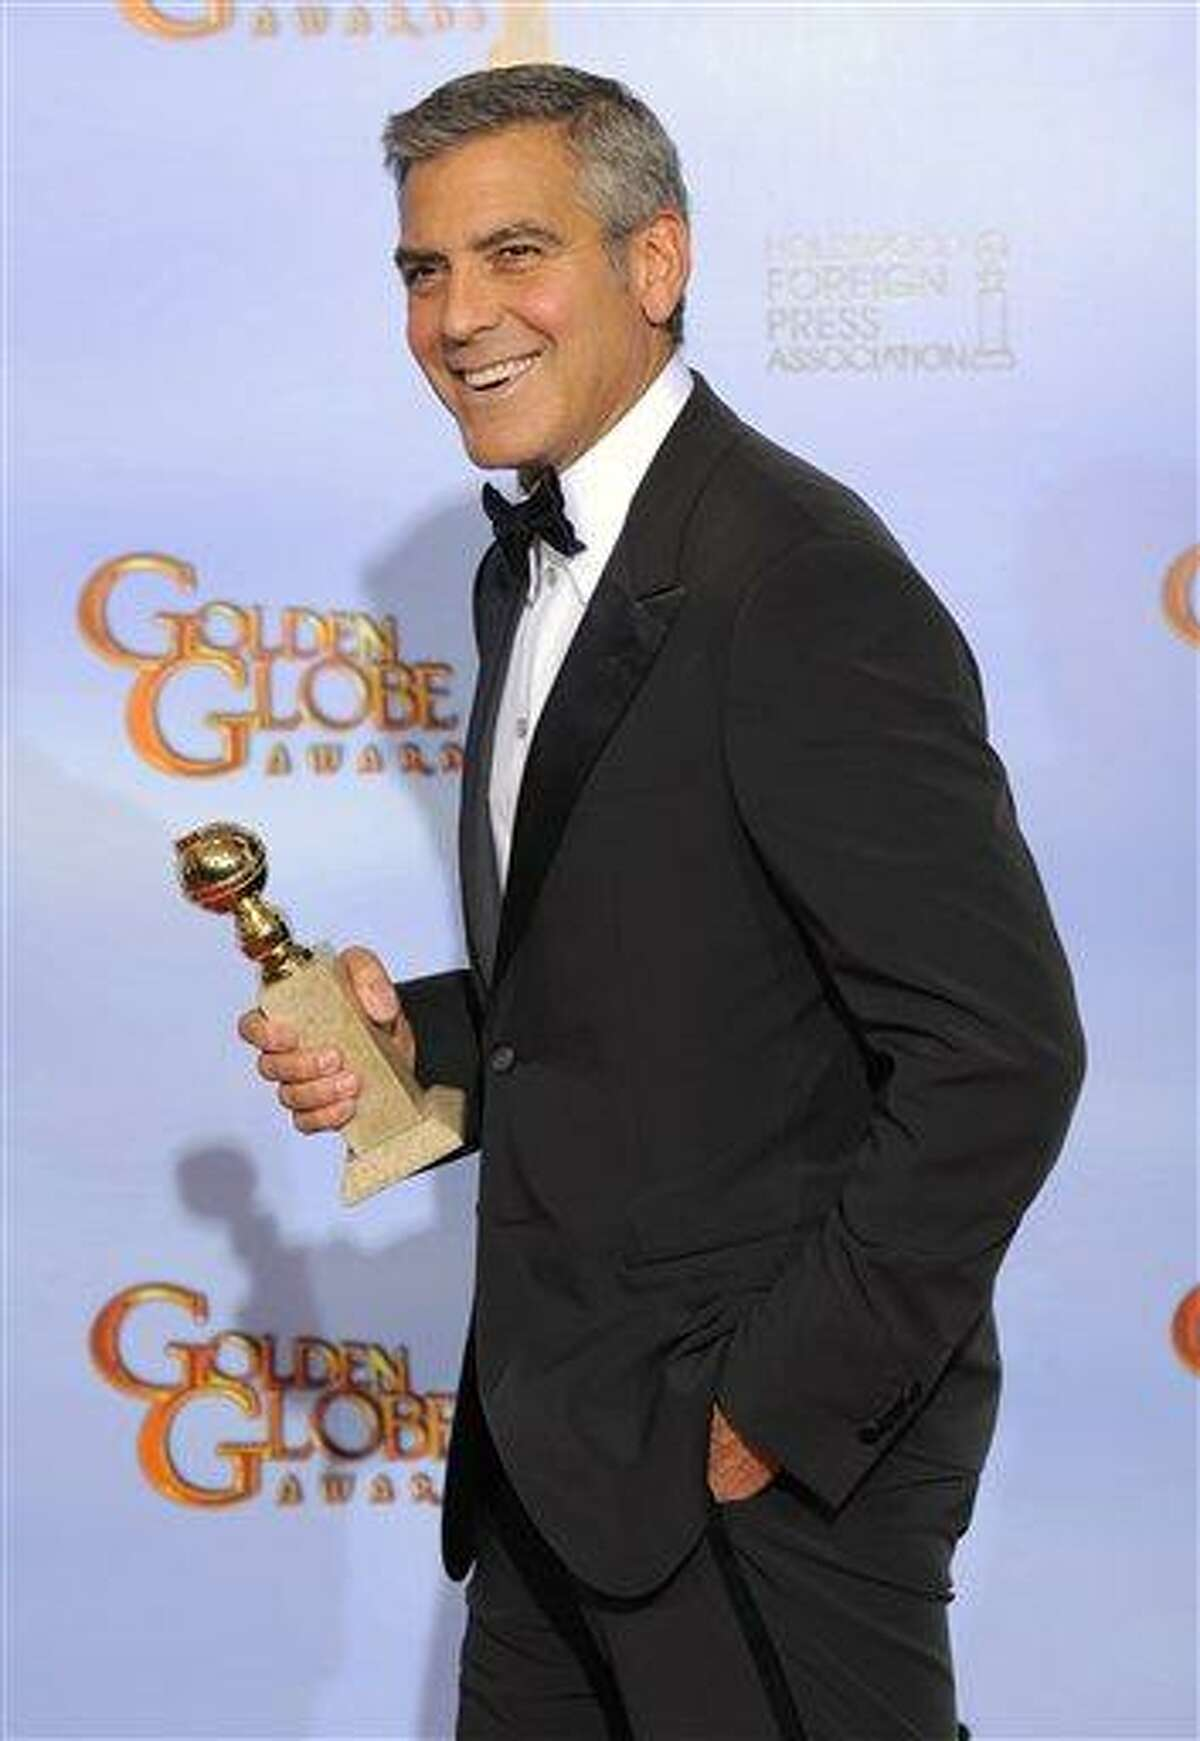 Actor George Clooney poses backstage with the award for Best Actor in a Motion Picture Drama for the film